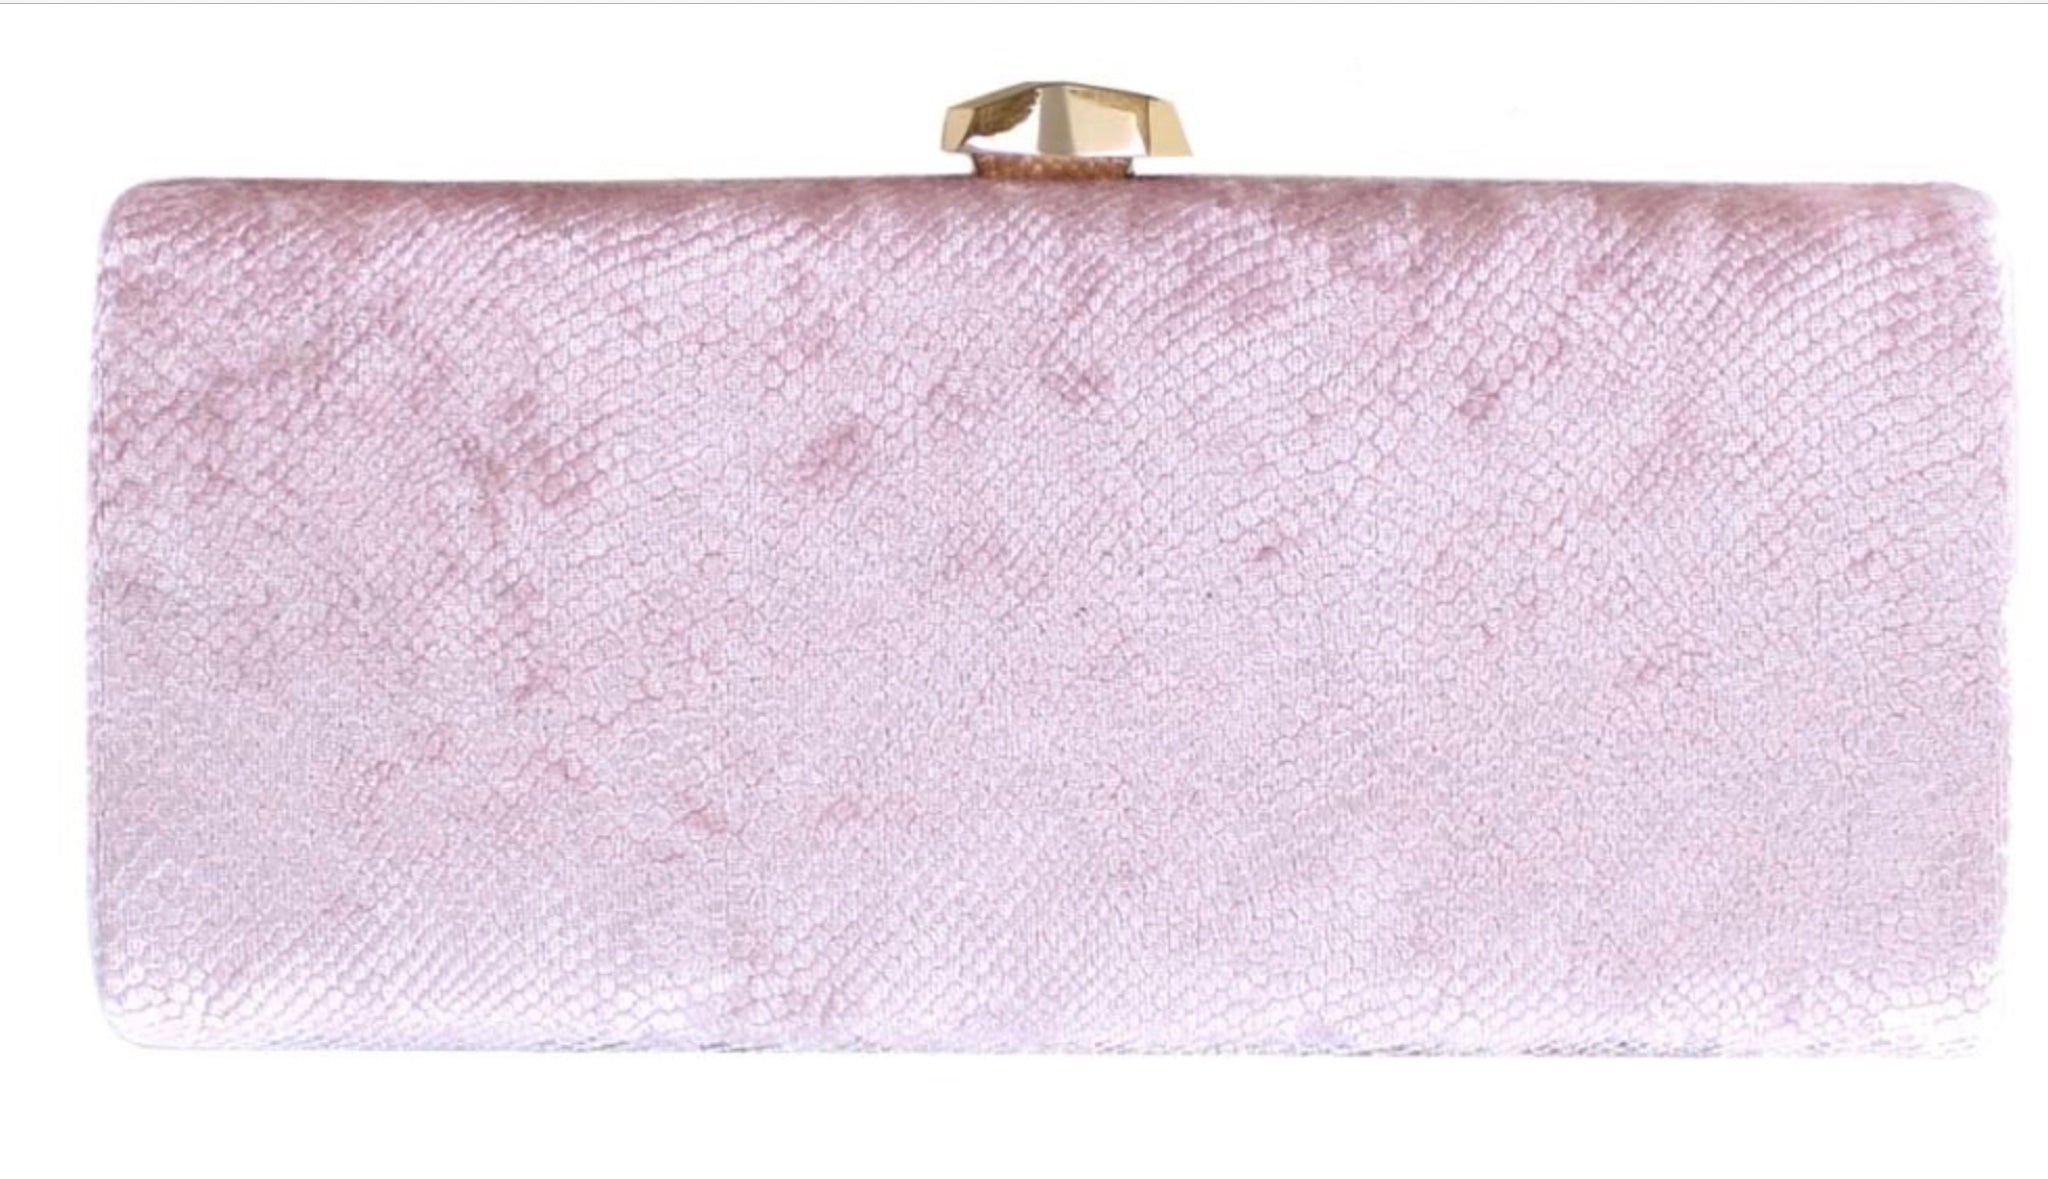 Velveteen evening bag